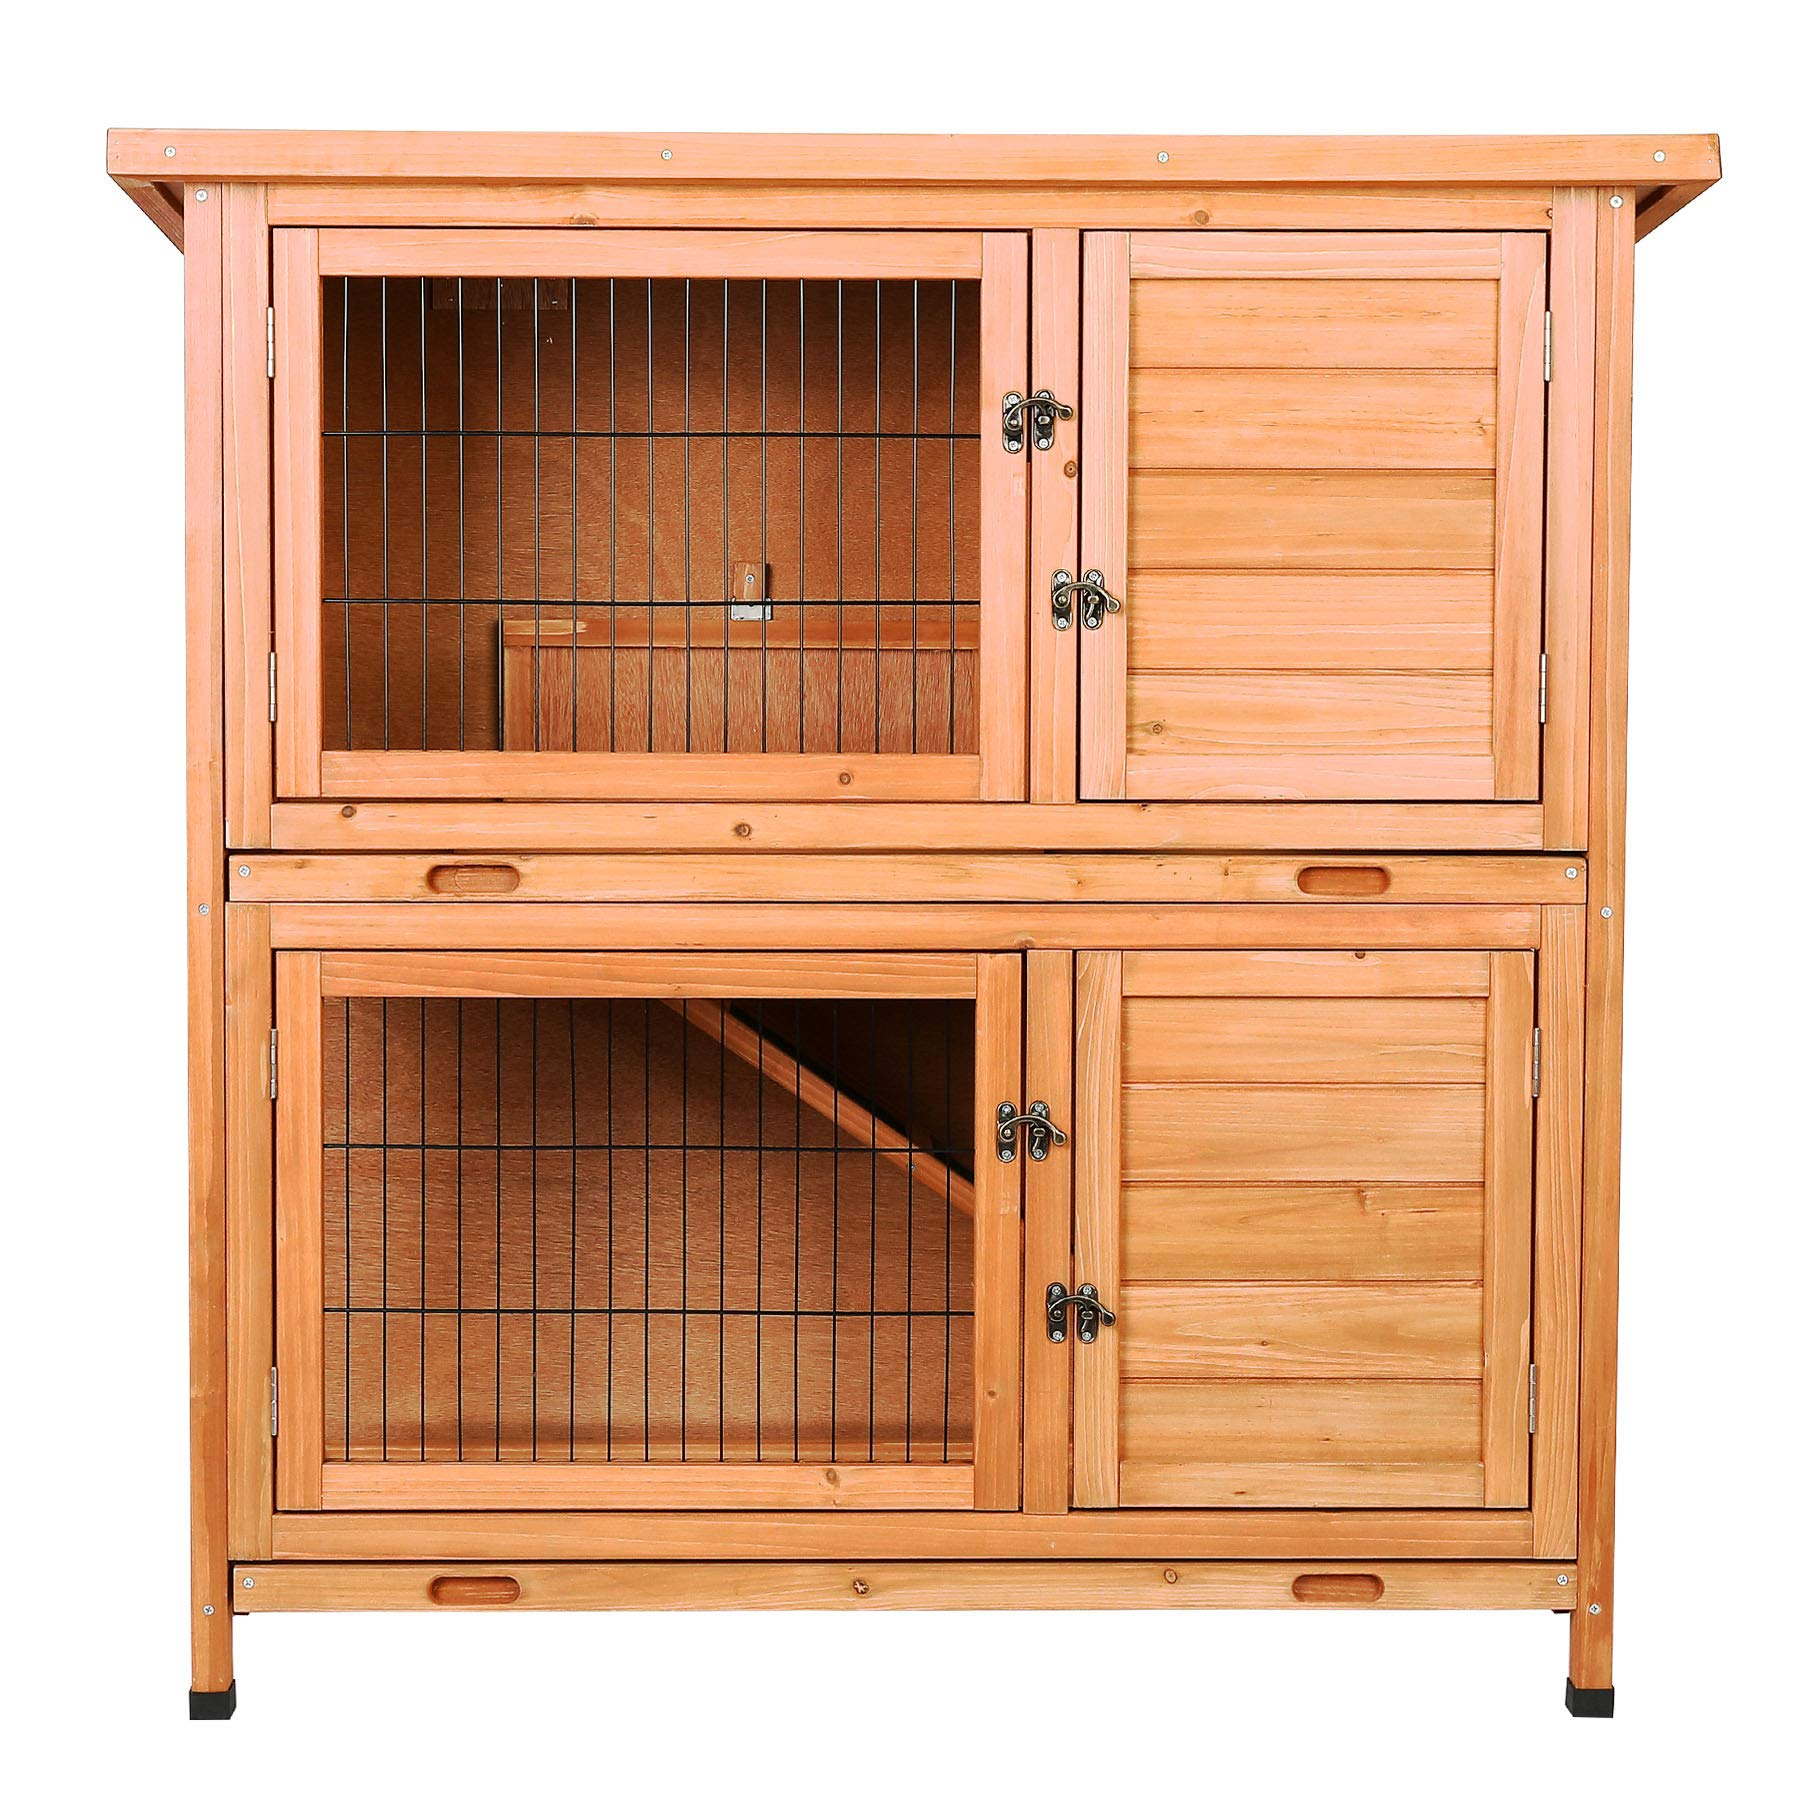 CO-Z 2 Story Outdoor Wooden Bunny Cage Rabbit Hutch Guinea Pig House in Nature Color with Ladder for Small Animals by CO-Z (Image #1)